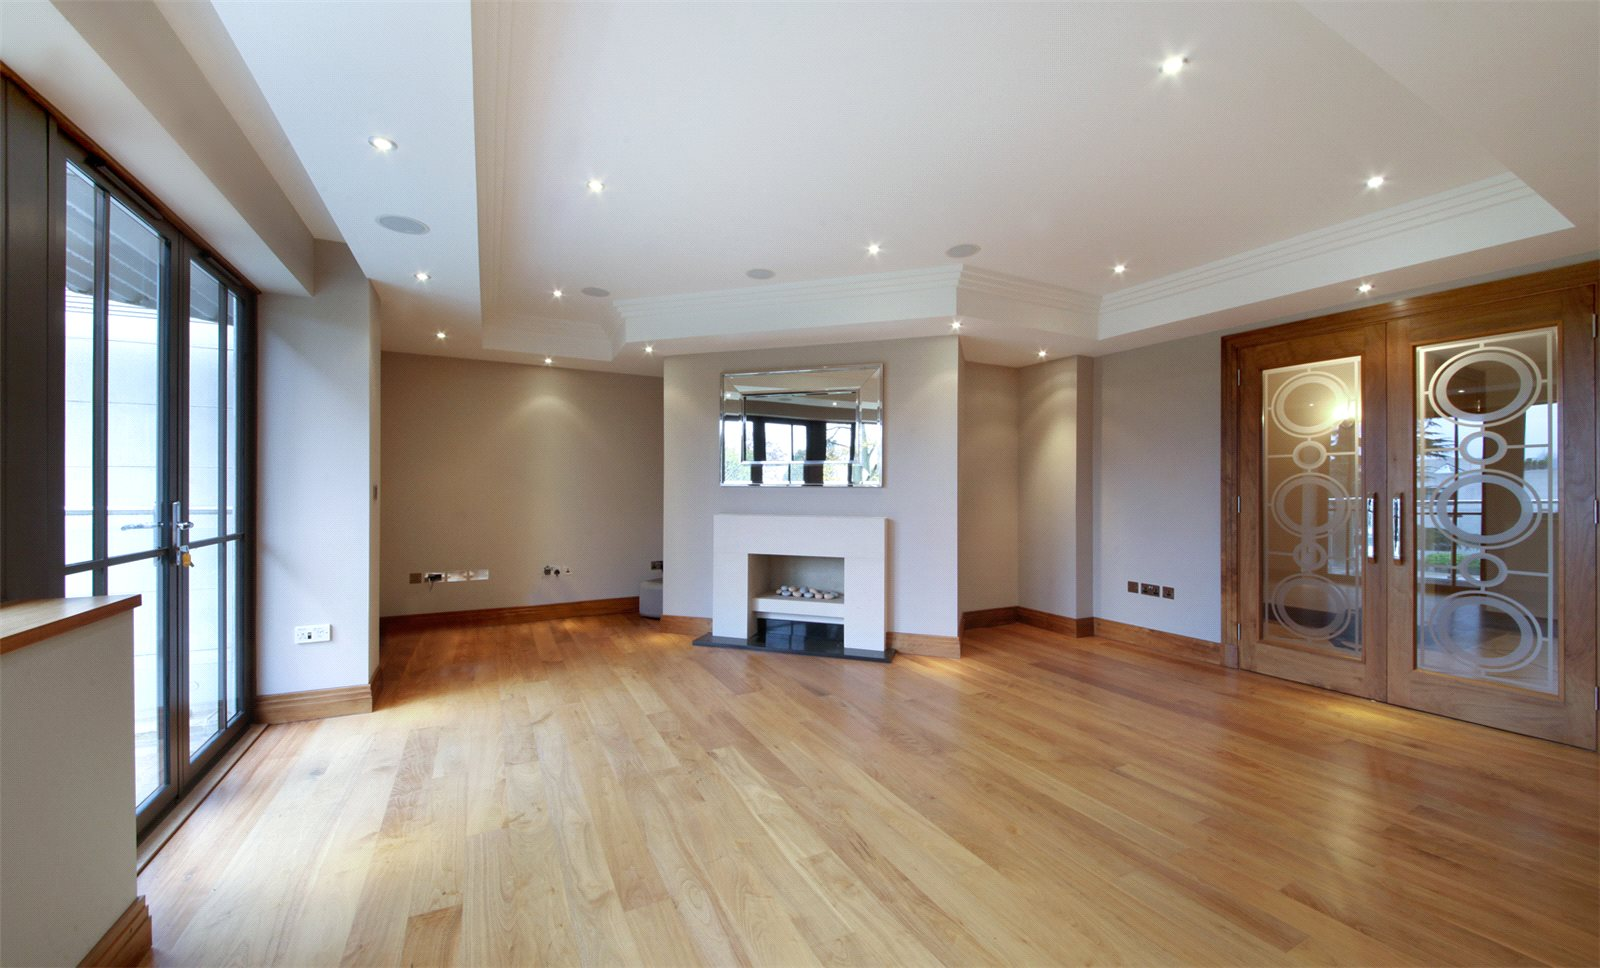 Additional photo for property listing at Charters Garden House, Charters, Charters Road, Ascot, Berkshire, SL5 Ascot, England